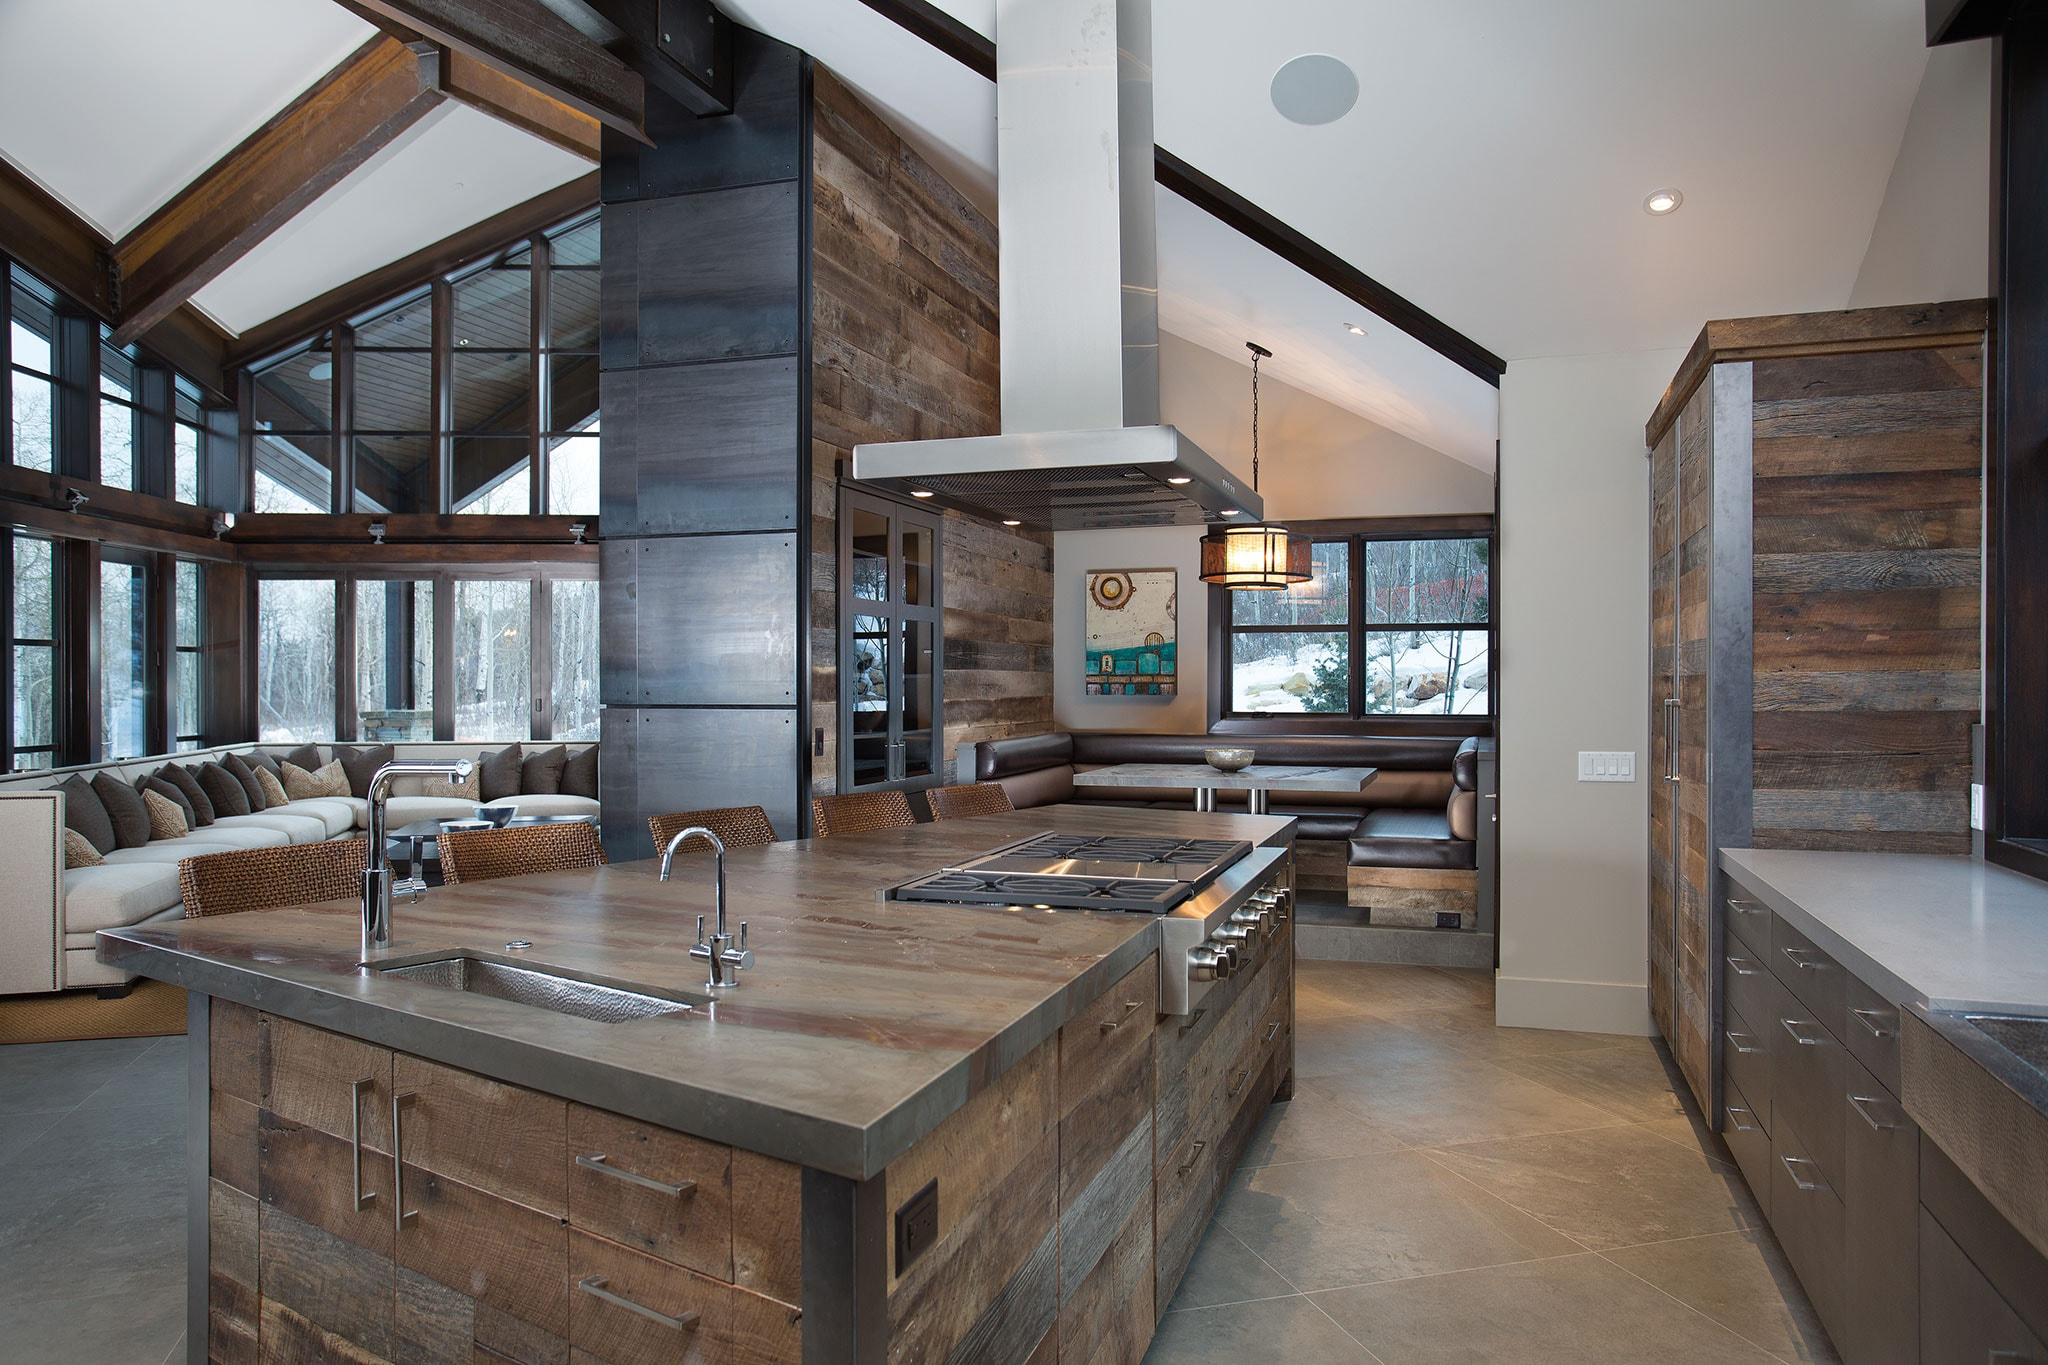 MOUNTAIN Contemporary  SubZero Wolf and Cove Kitchens